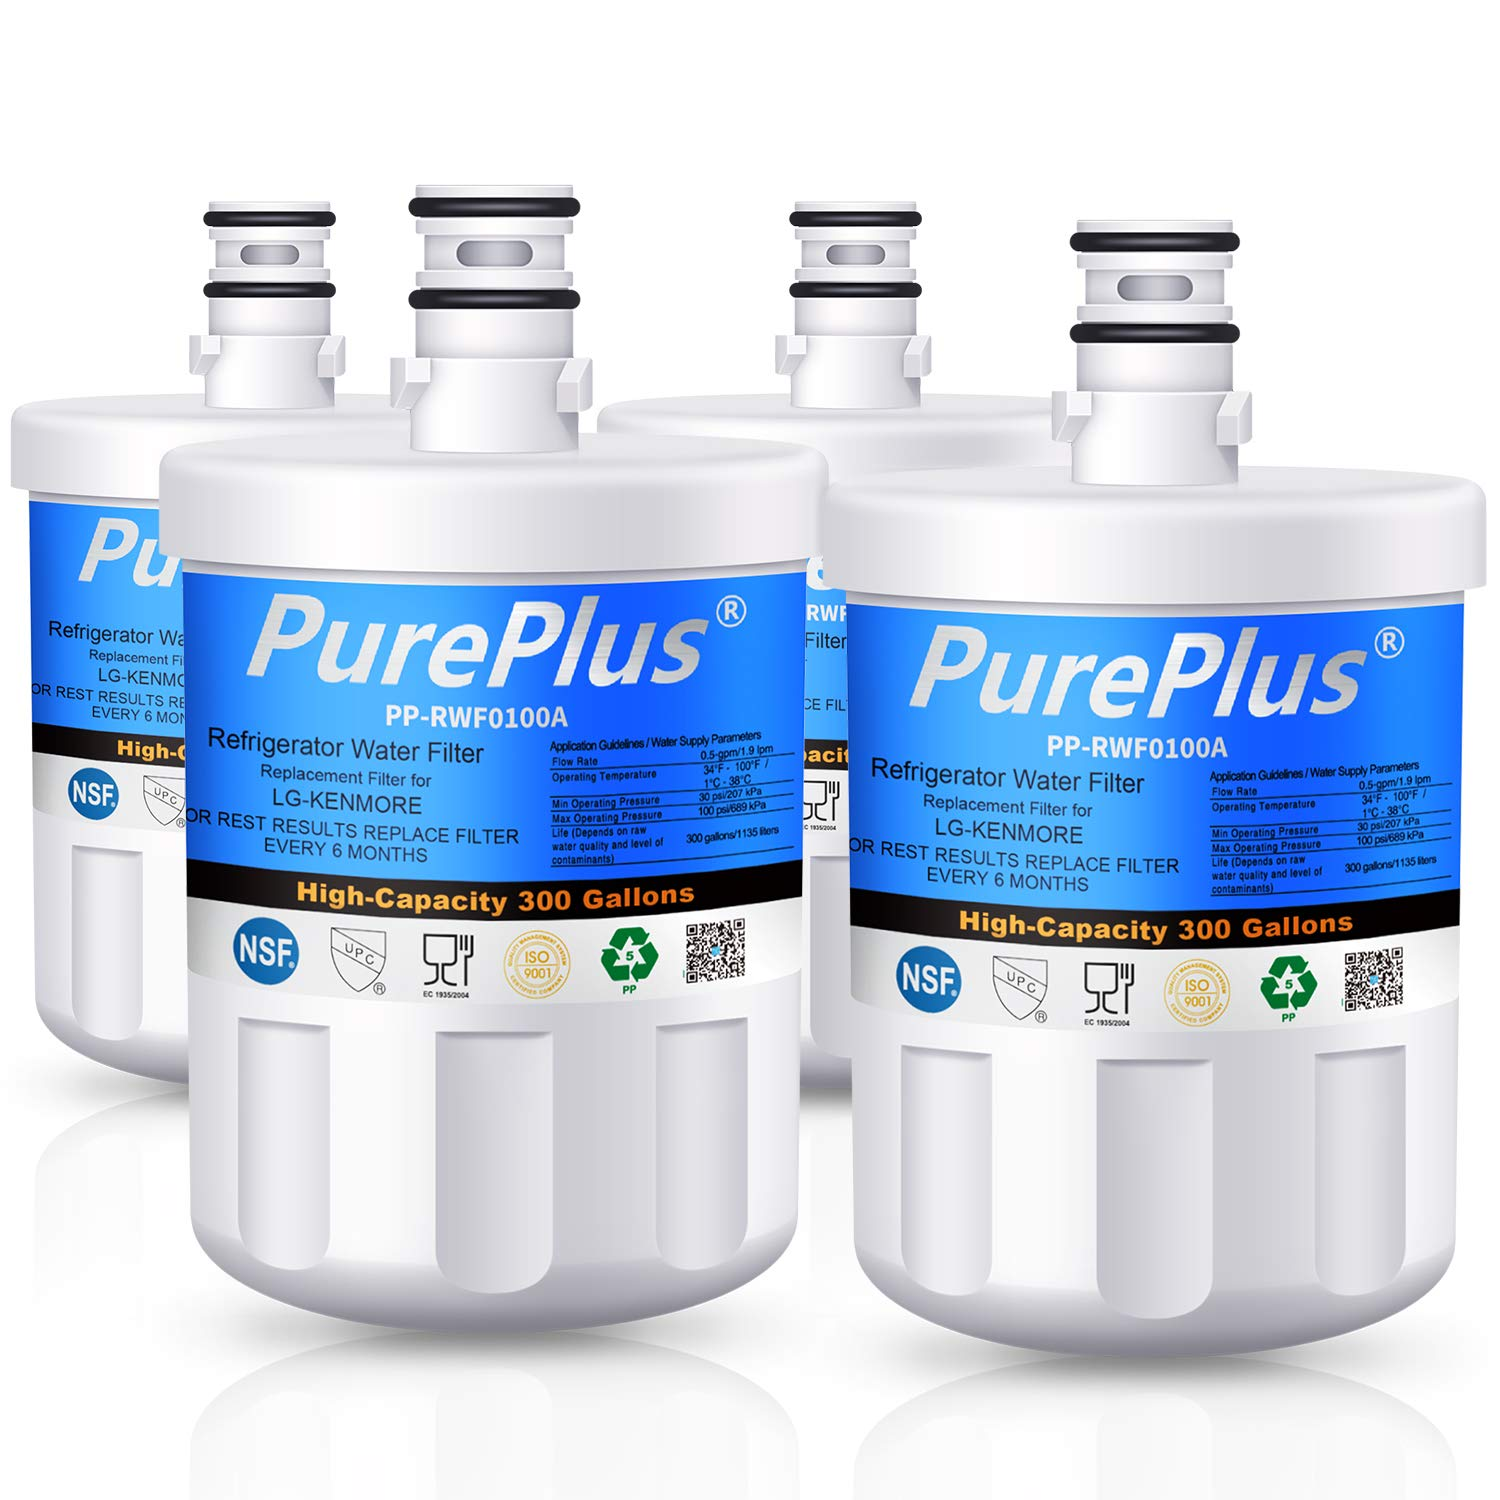 PurePlus LT500P Refrigerator Water Filter, Compatible with LG LT500P, 5231JA2002A, 5231JA2002B, ADQ72910901,GEN11042FR-08,LFX25974ST,Kenmore 9890, 46-9890, 469890 (Pack of 4)